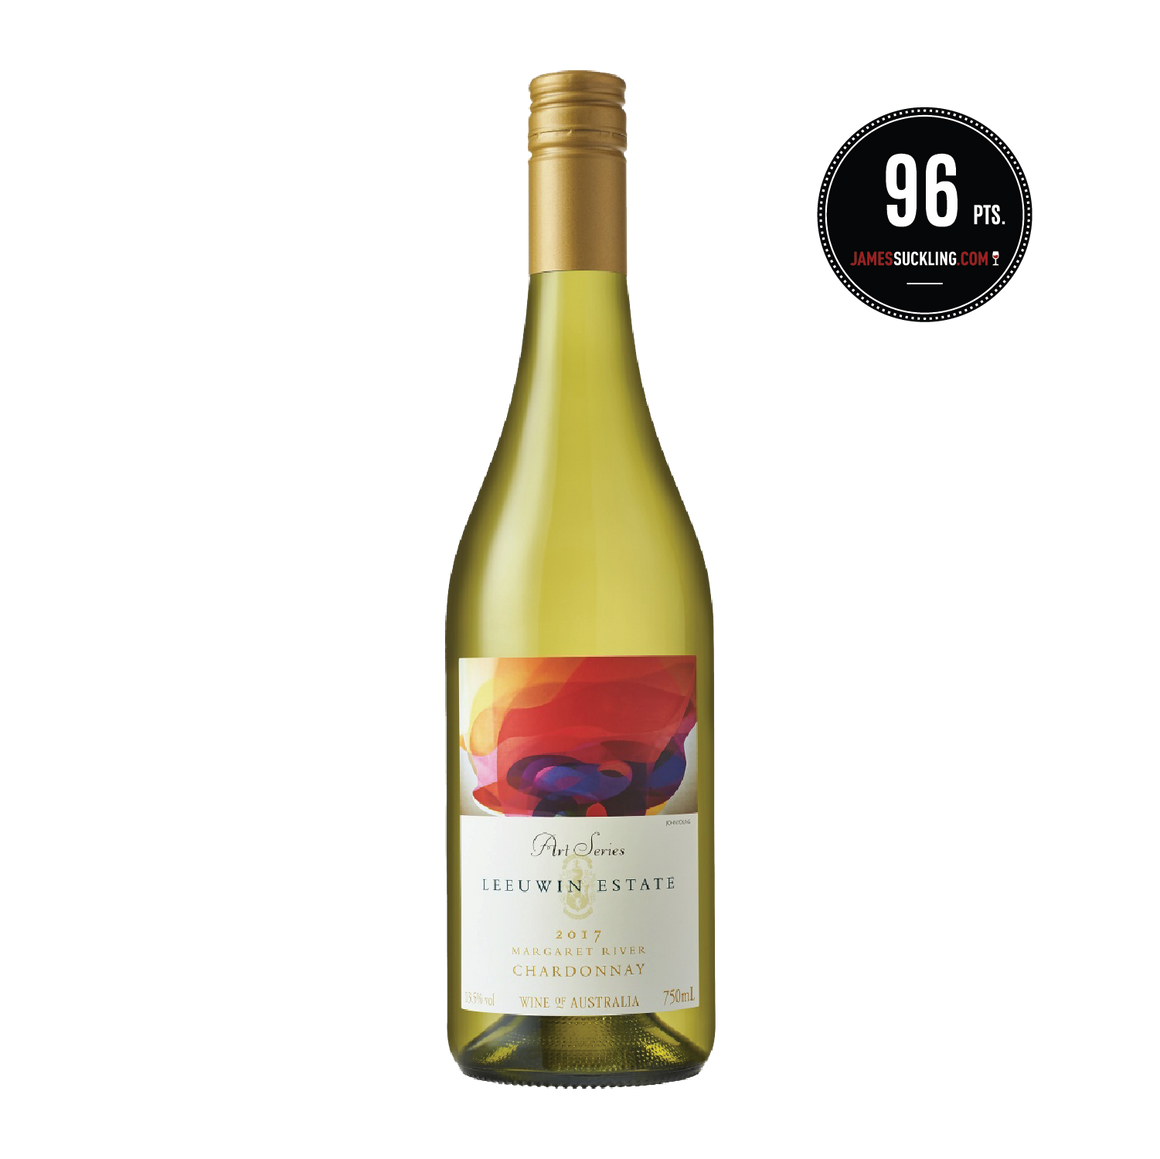 LEEUWIN ESTATE ART SERIES CHARDONNAY 2017 (PRE-ORDER - new shipment coming in mid September)